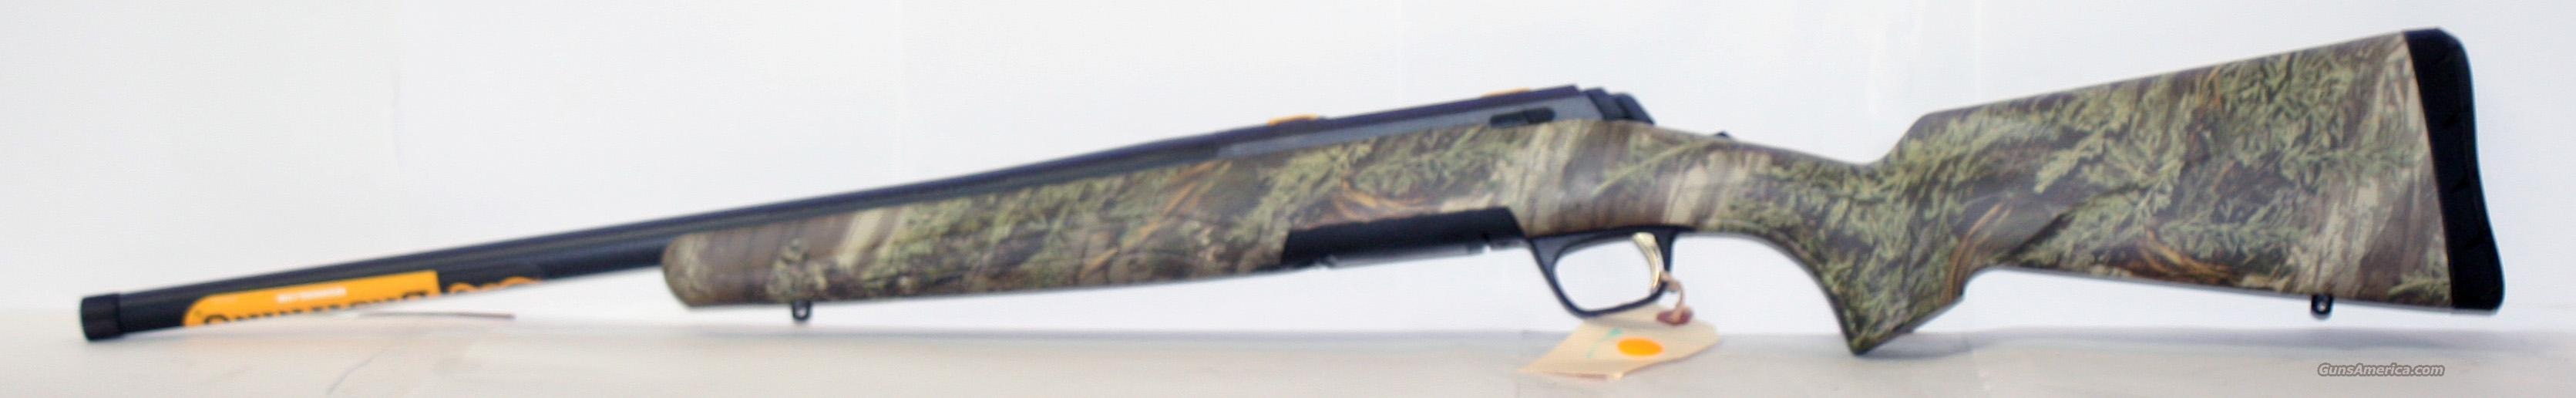 BROWNING X-BOLT HOG STALKER REALTREE MAX 1 CAMO 223 SUPPRESSOR READY NEW IN BOX  Guns > Rifles > Browning Rifles > Bolt Action > Hunting > Blue